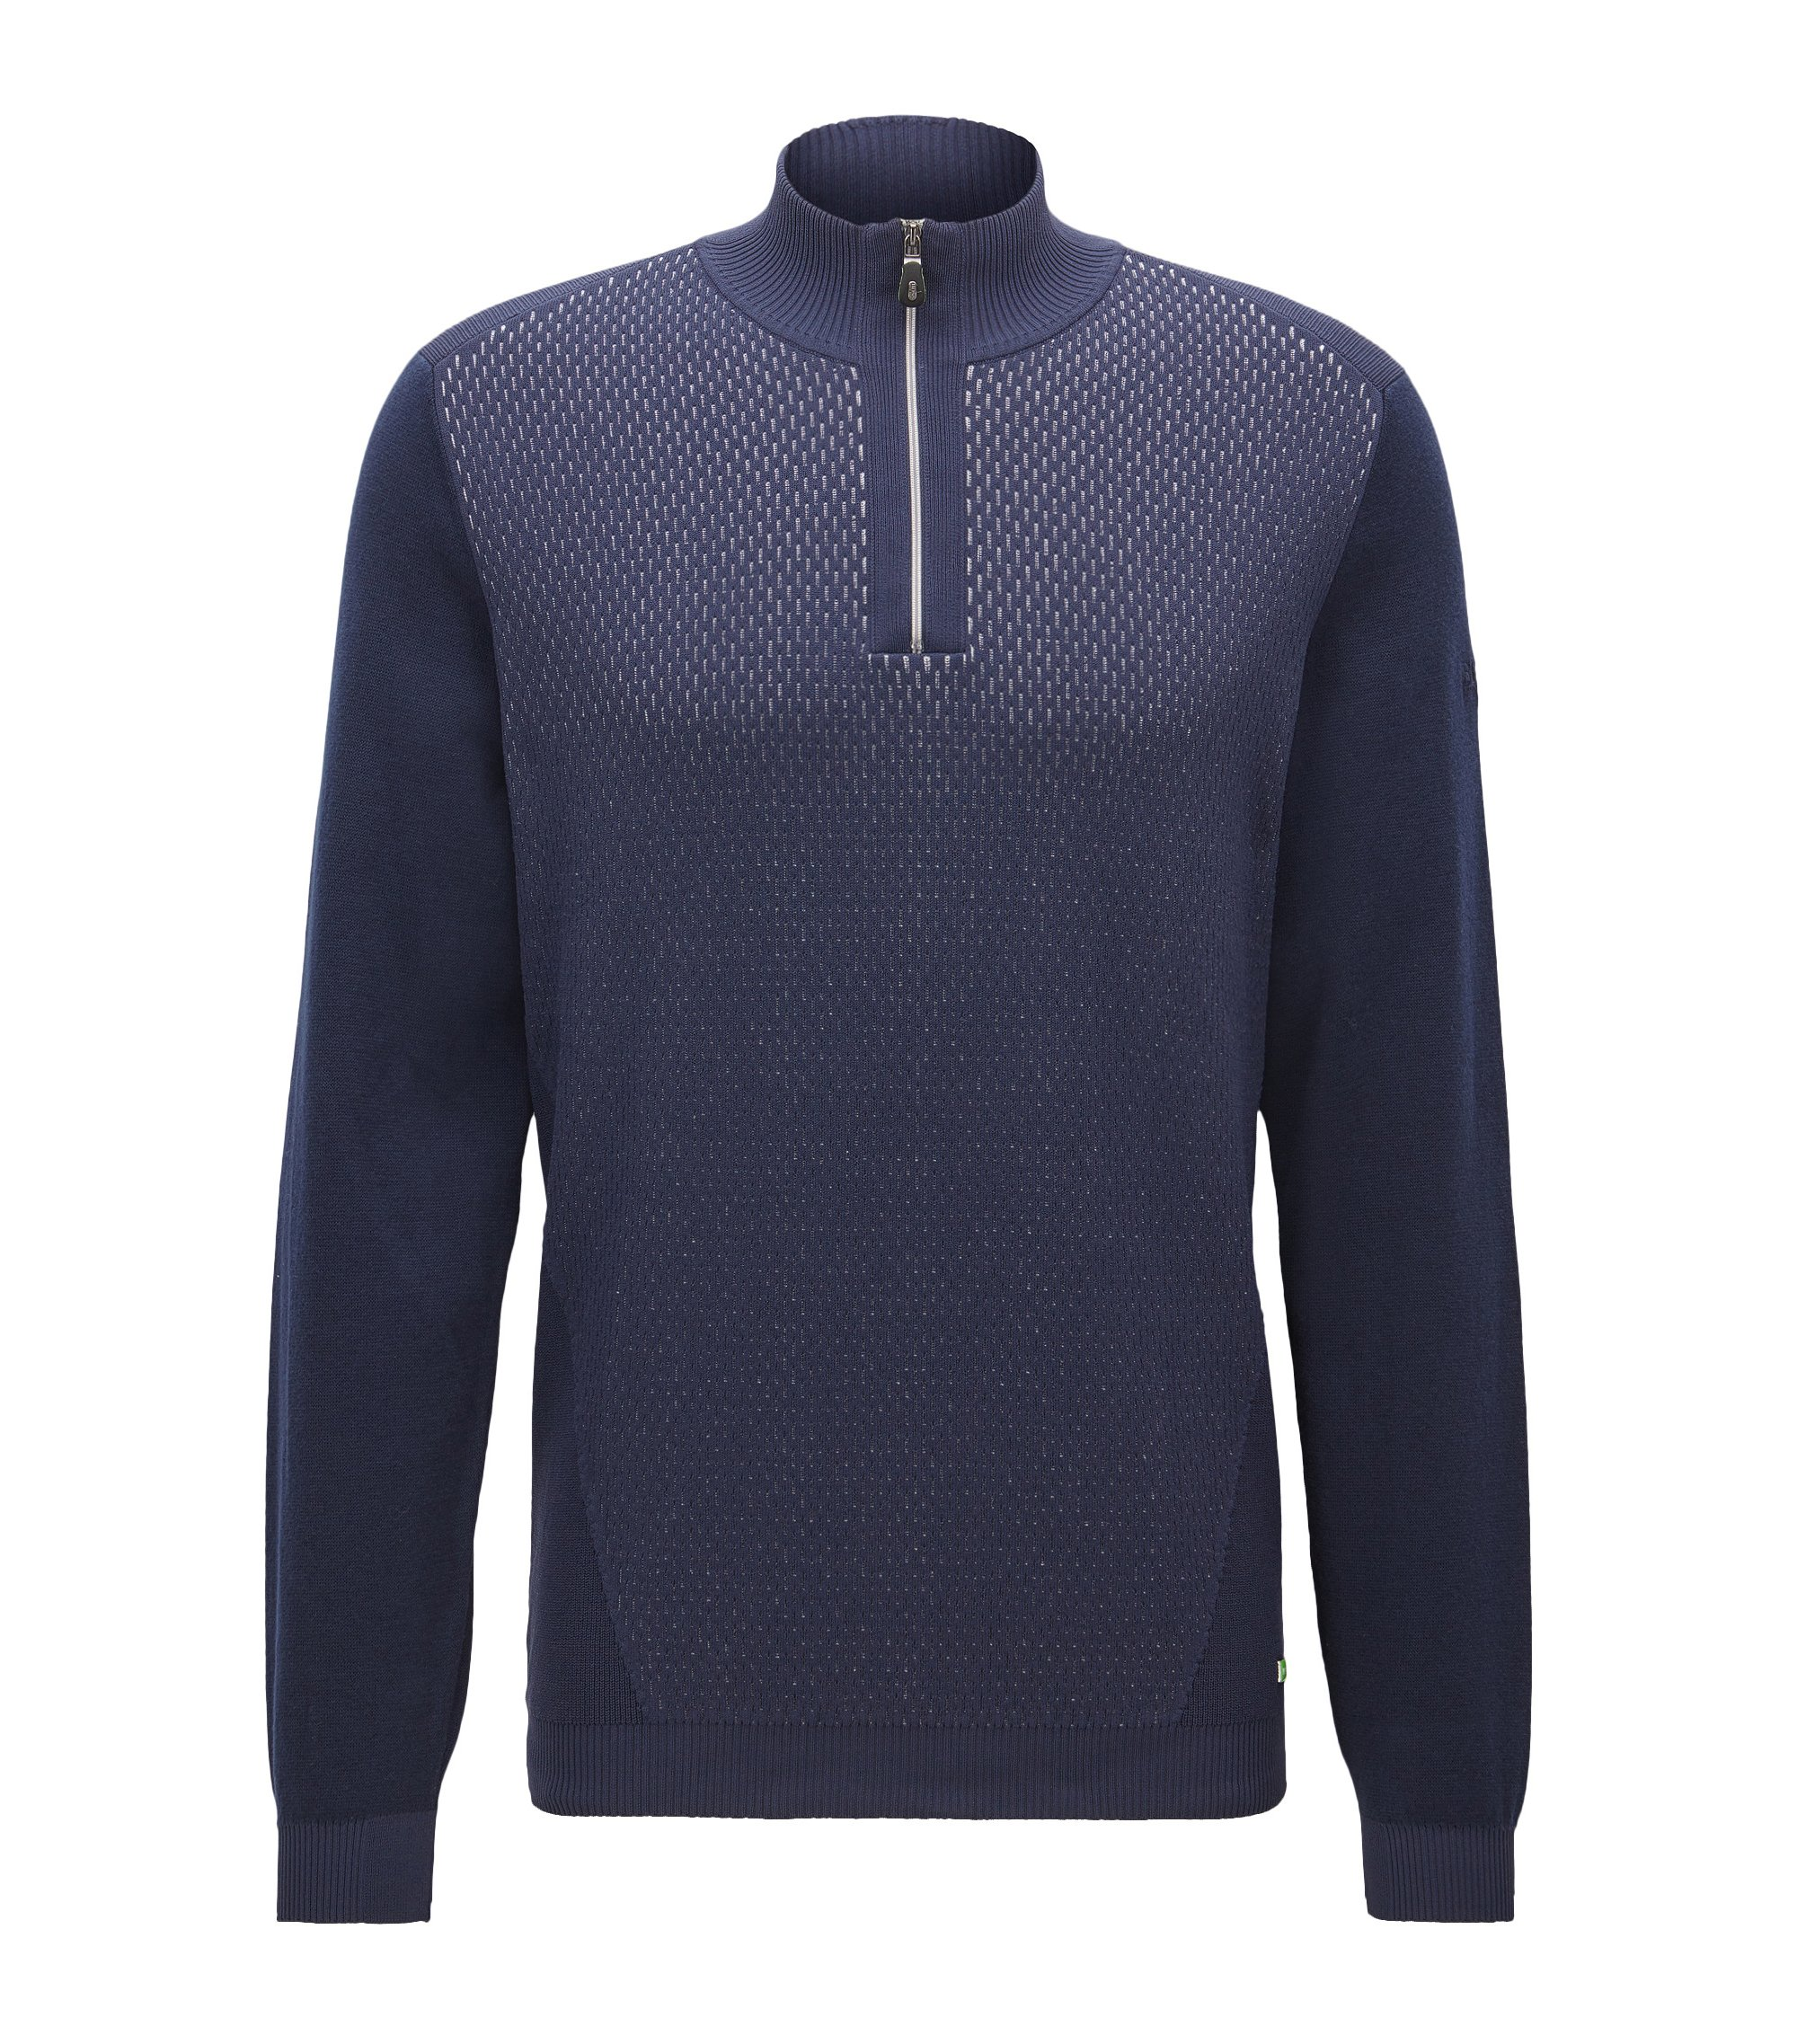 Cotton Blend Half-Zip Sweater | Zokia, Dark Blue